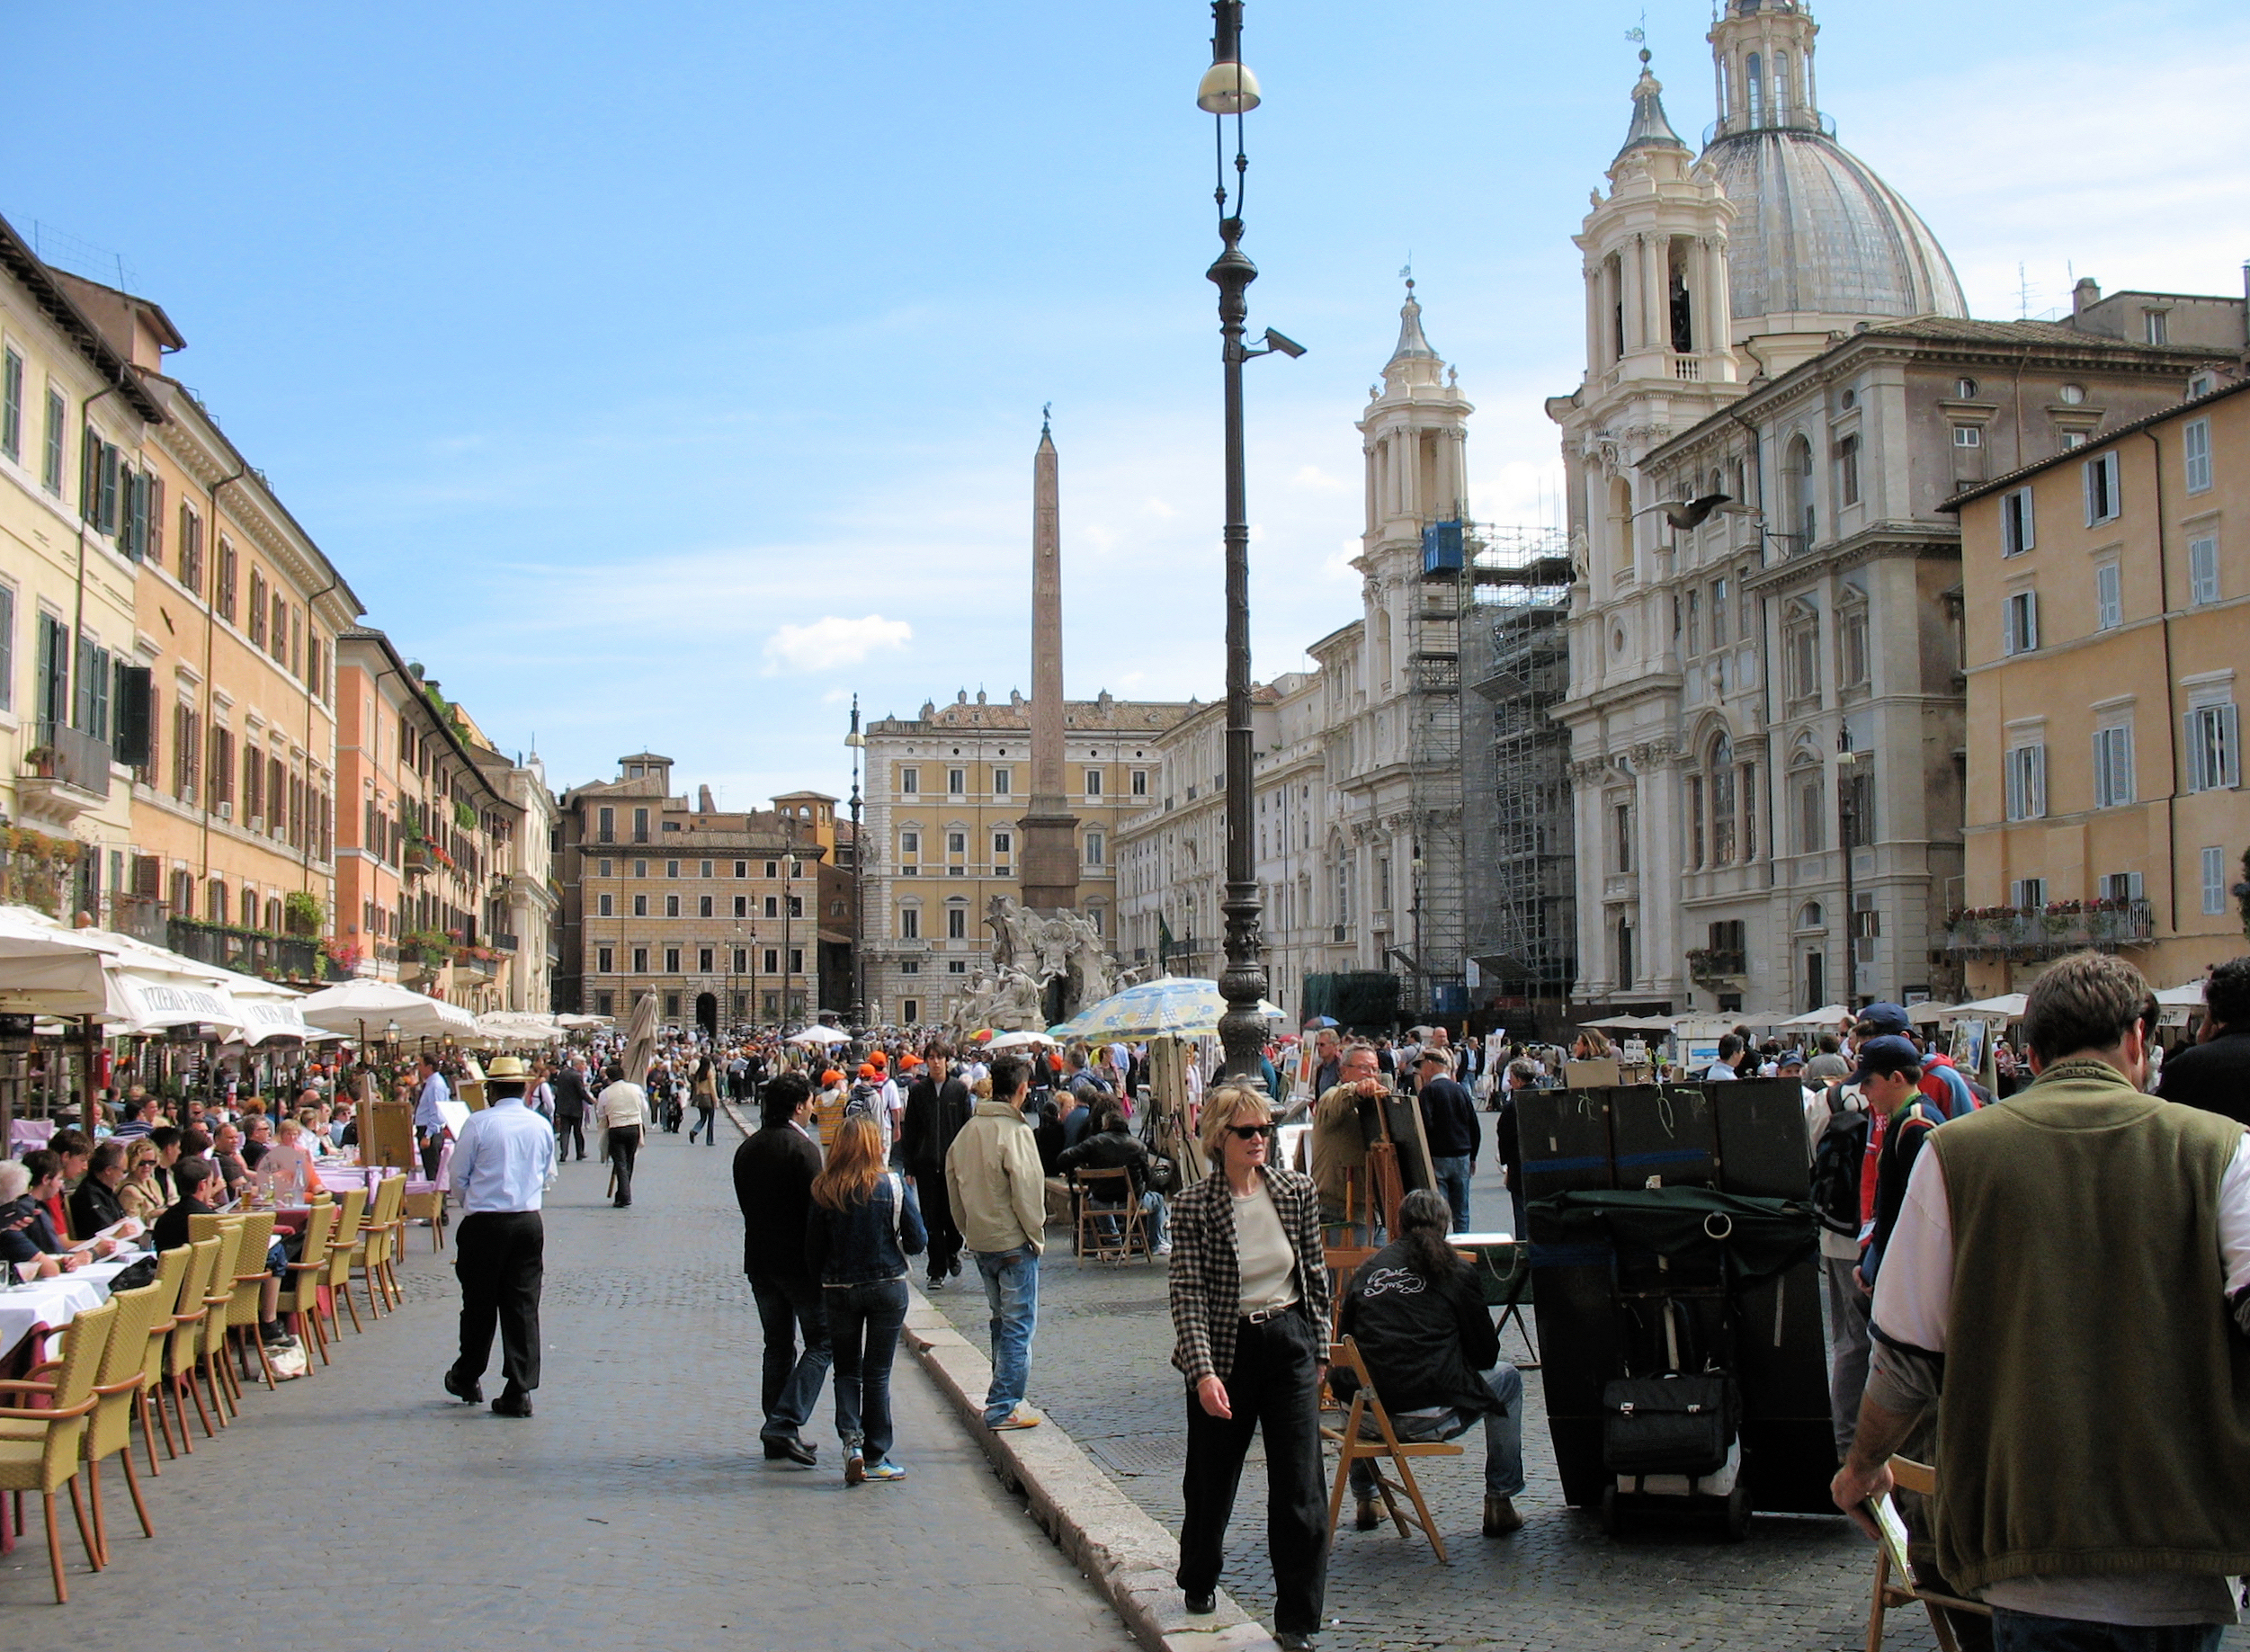 Rome Italy  city photo : Piazza Navona, Rome, Italy in 2006 Wikipedia